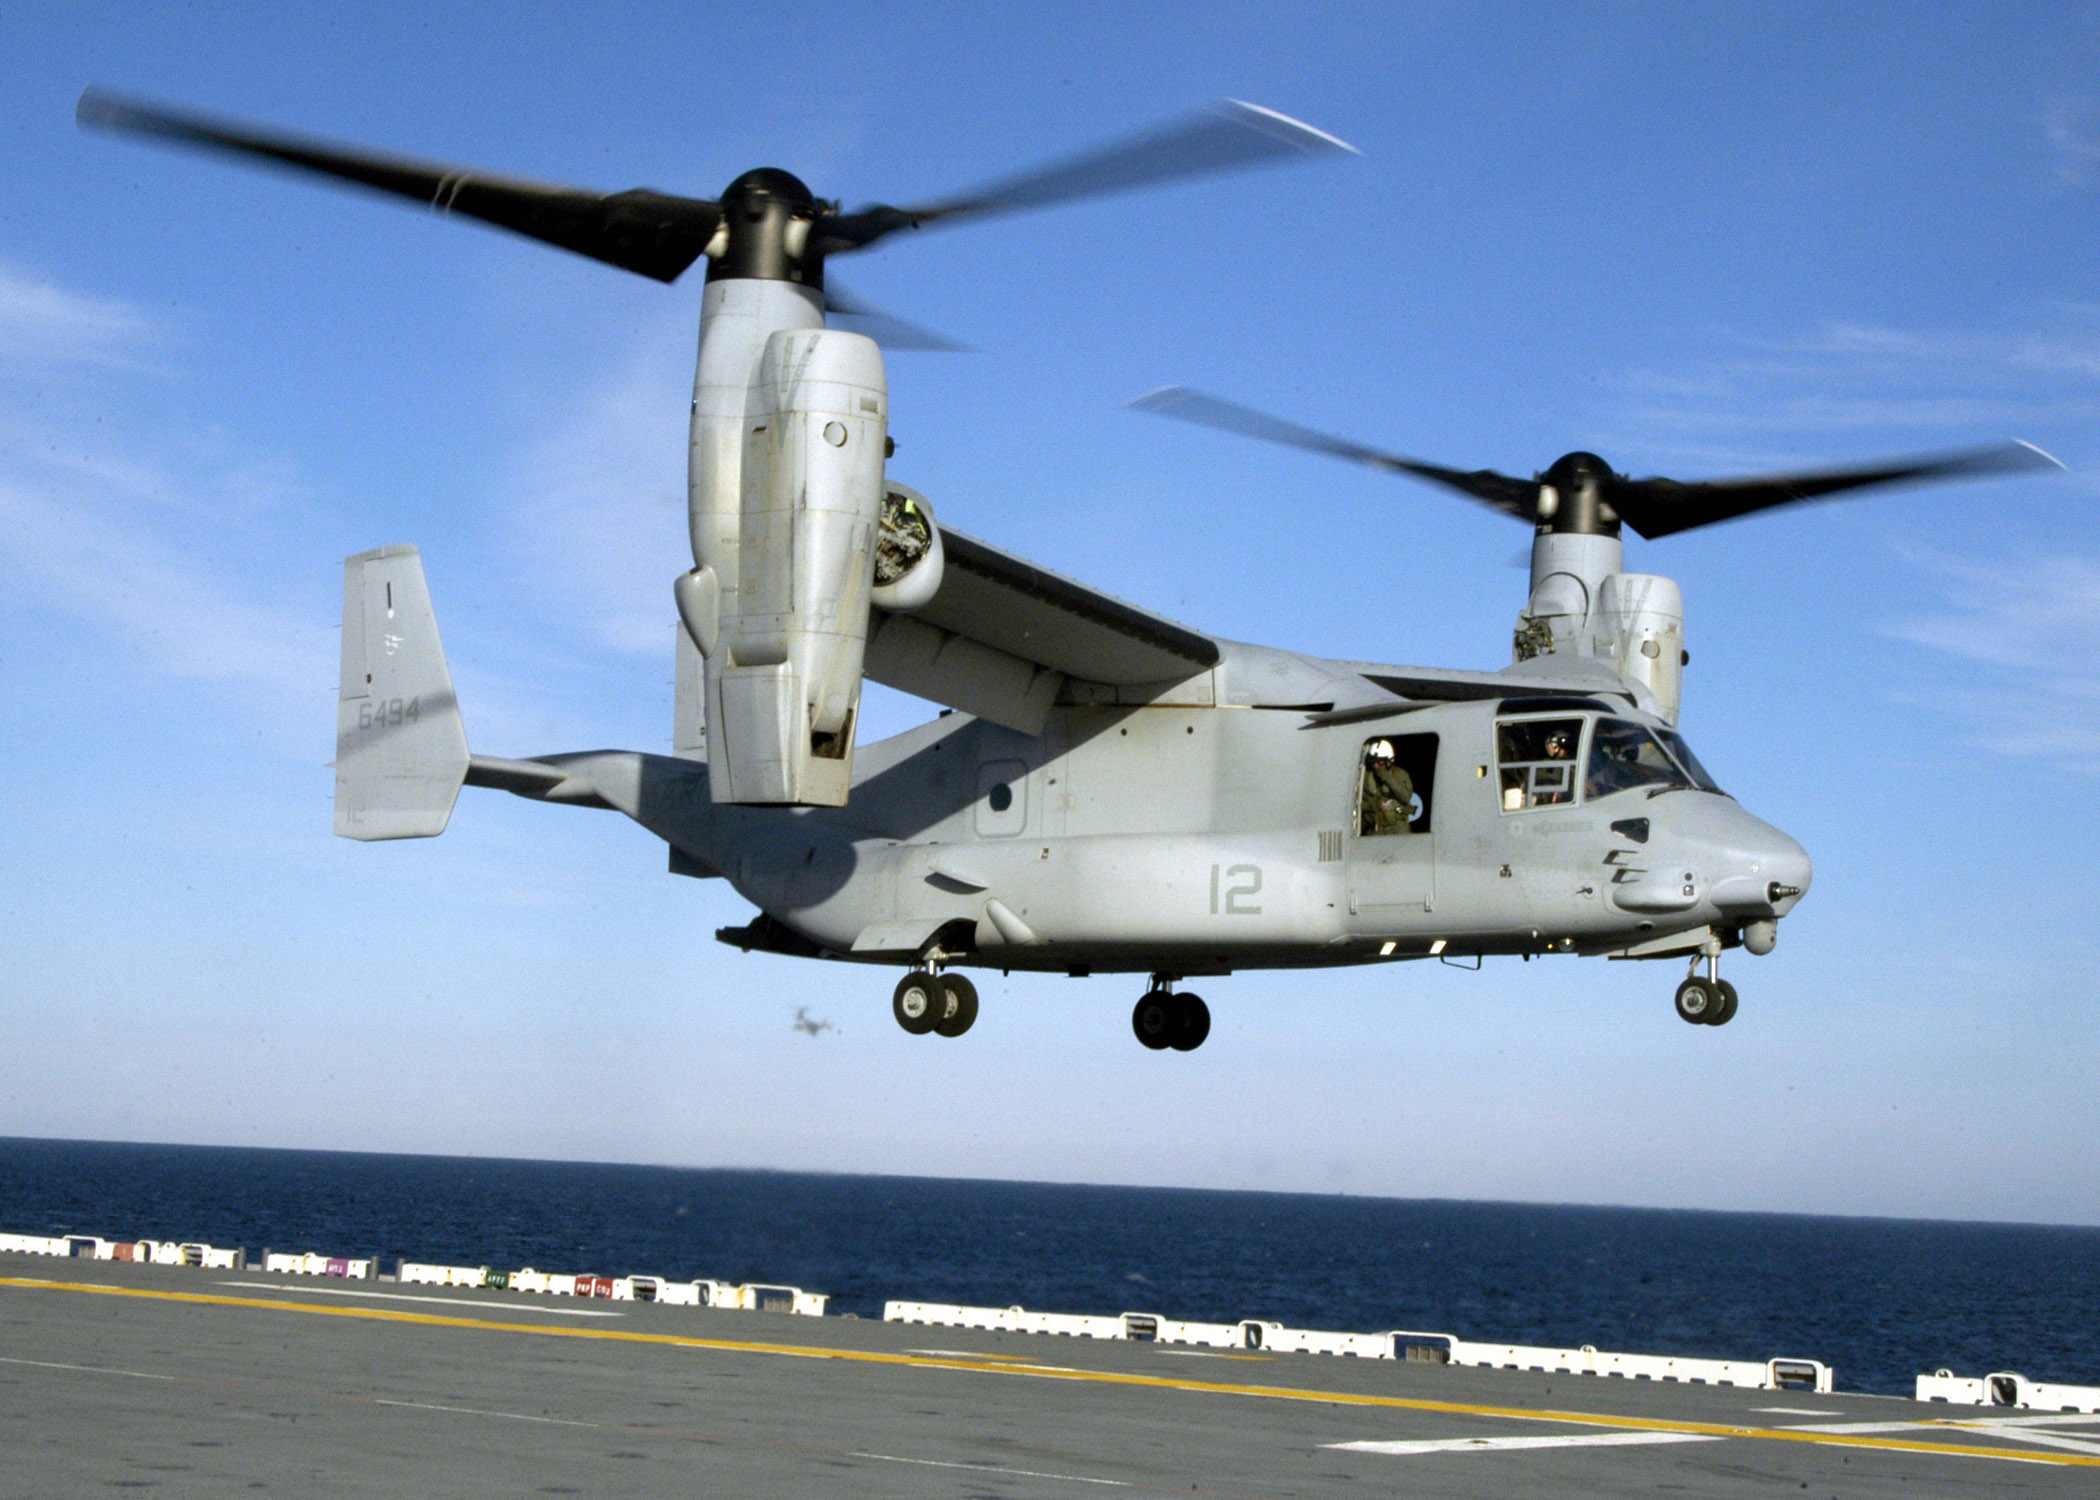 osprey helicopter wallpaper - photo #4